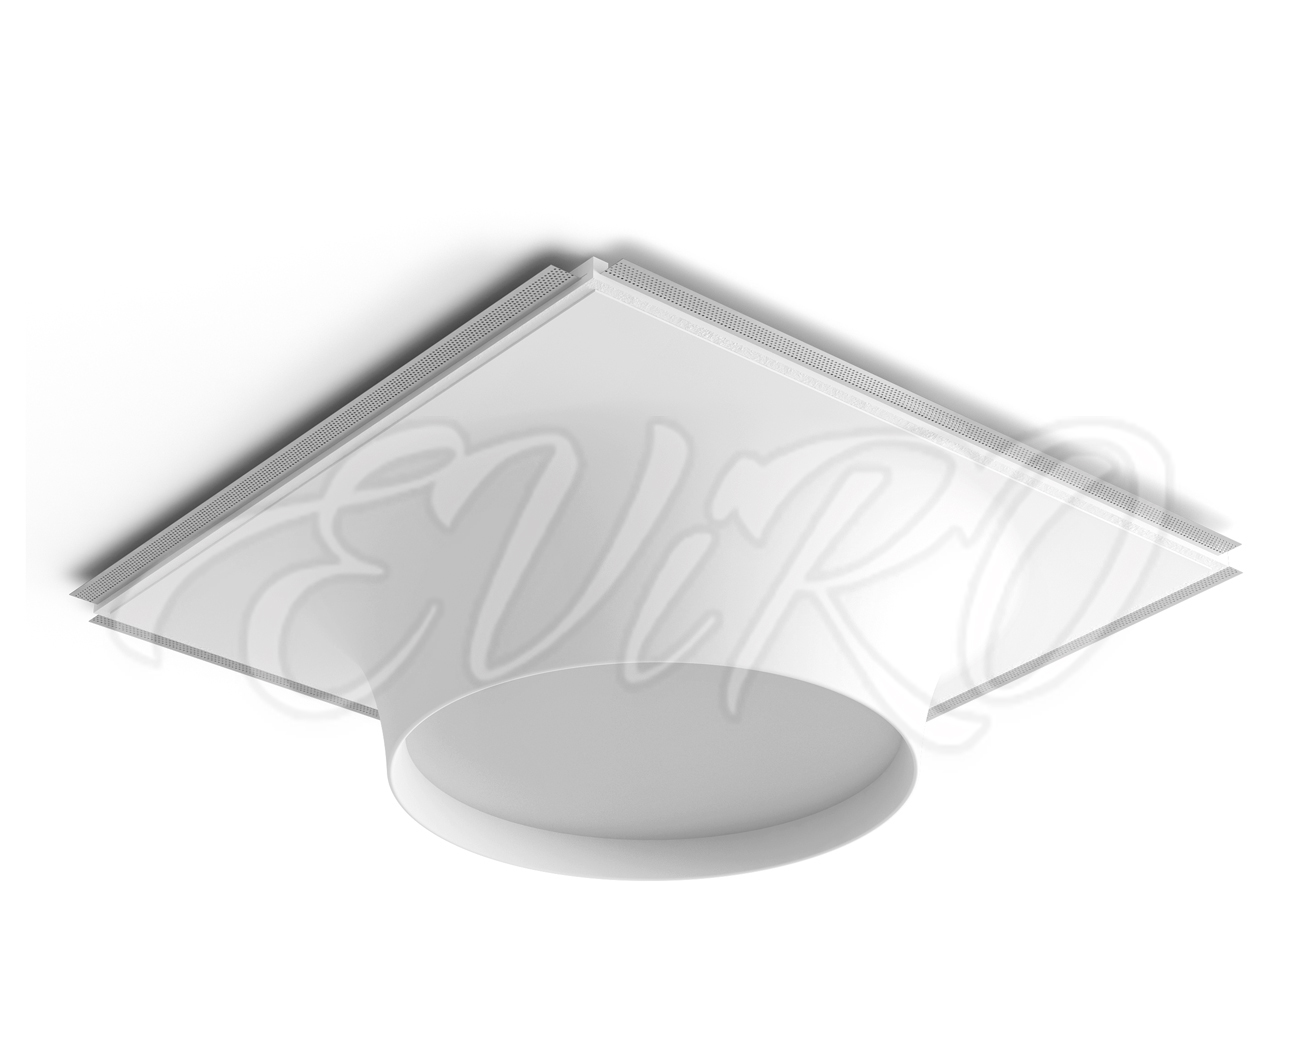 Built-in ceiling lighting fixture EViRO VPS 48